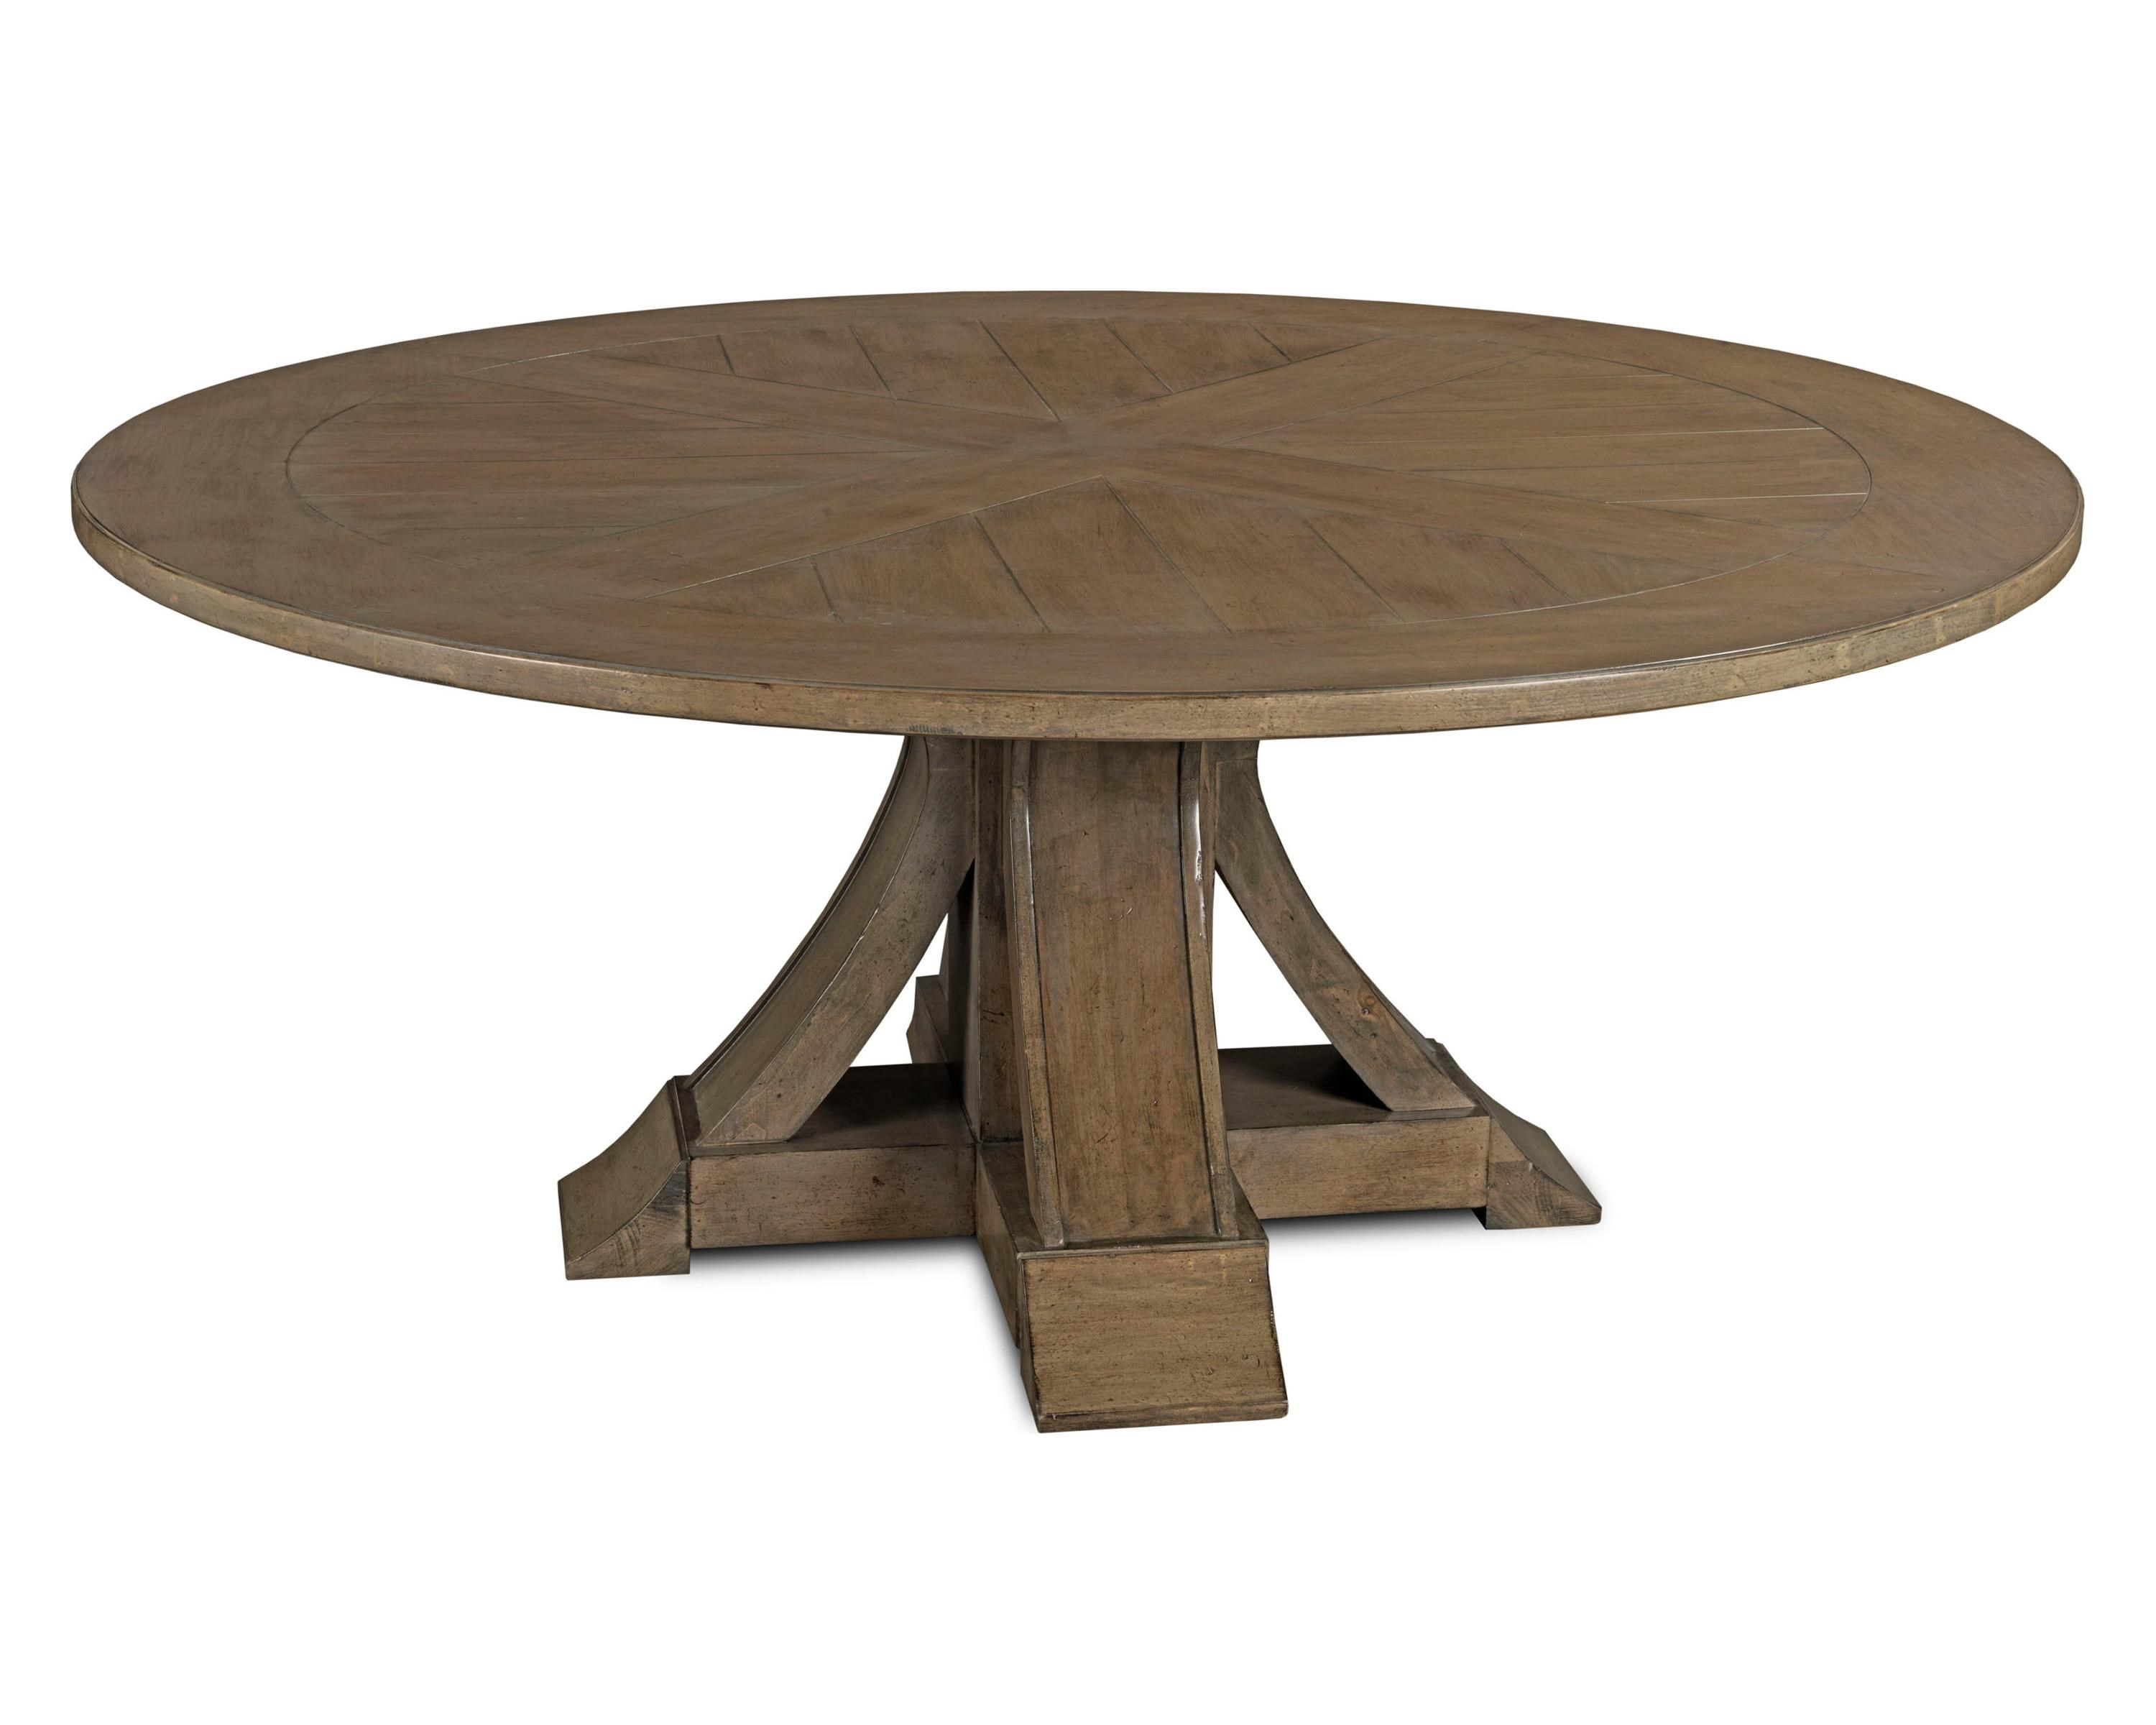 72 inch dining table hamptons style dining drexel viage alpine pedestal 72 inch dining table sprintz